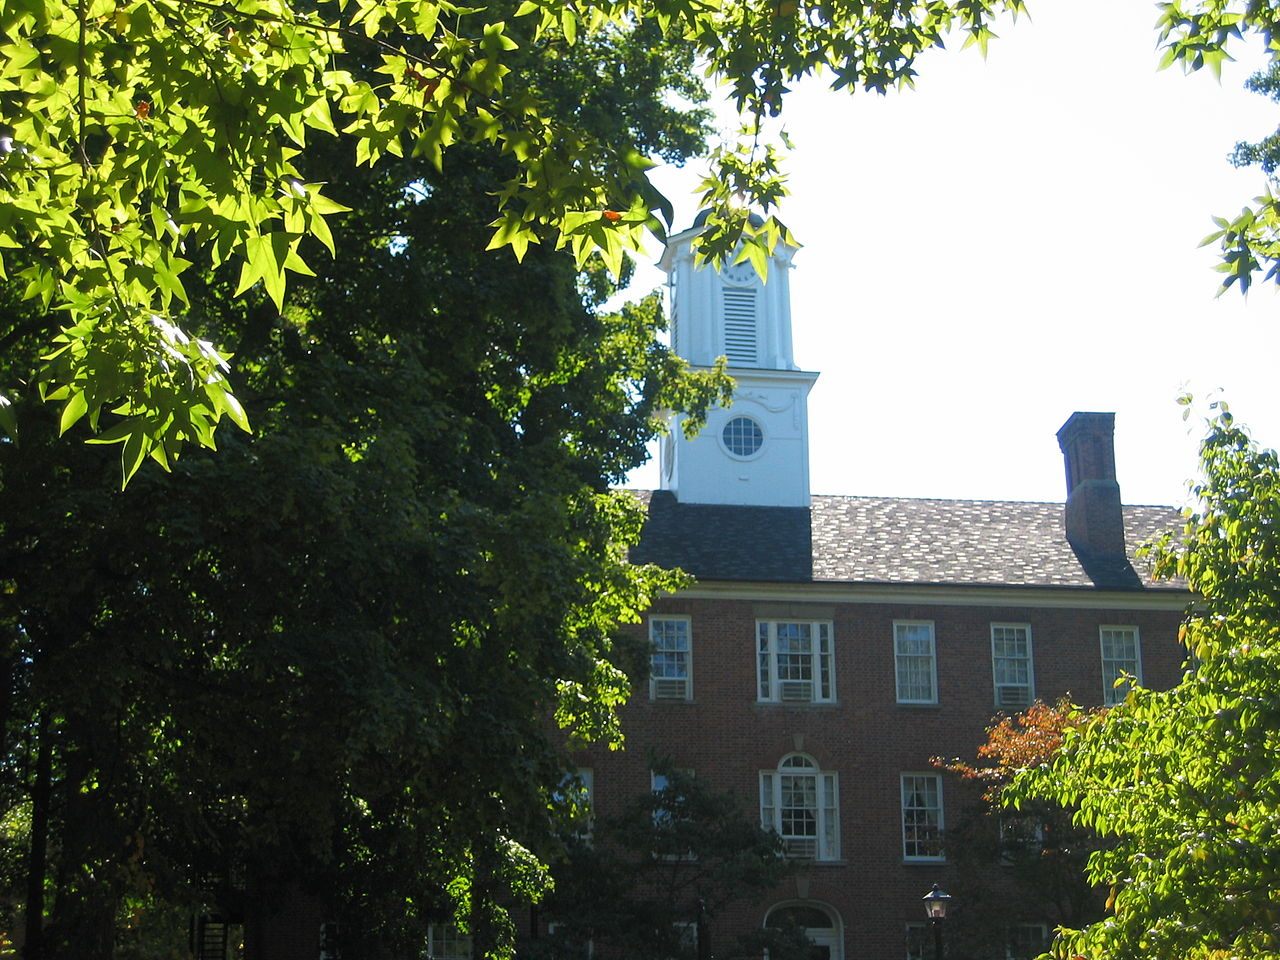 Cutler Hall at Ohio University - Ottawa80 via Wikimedia Commons